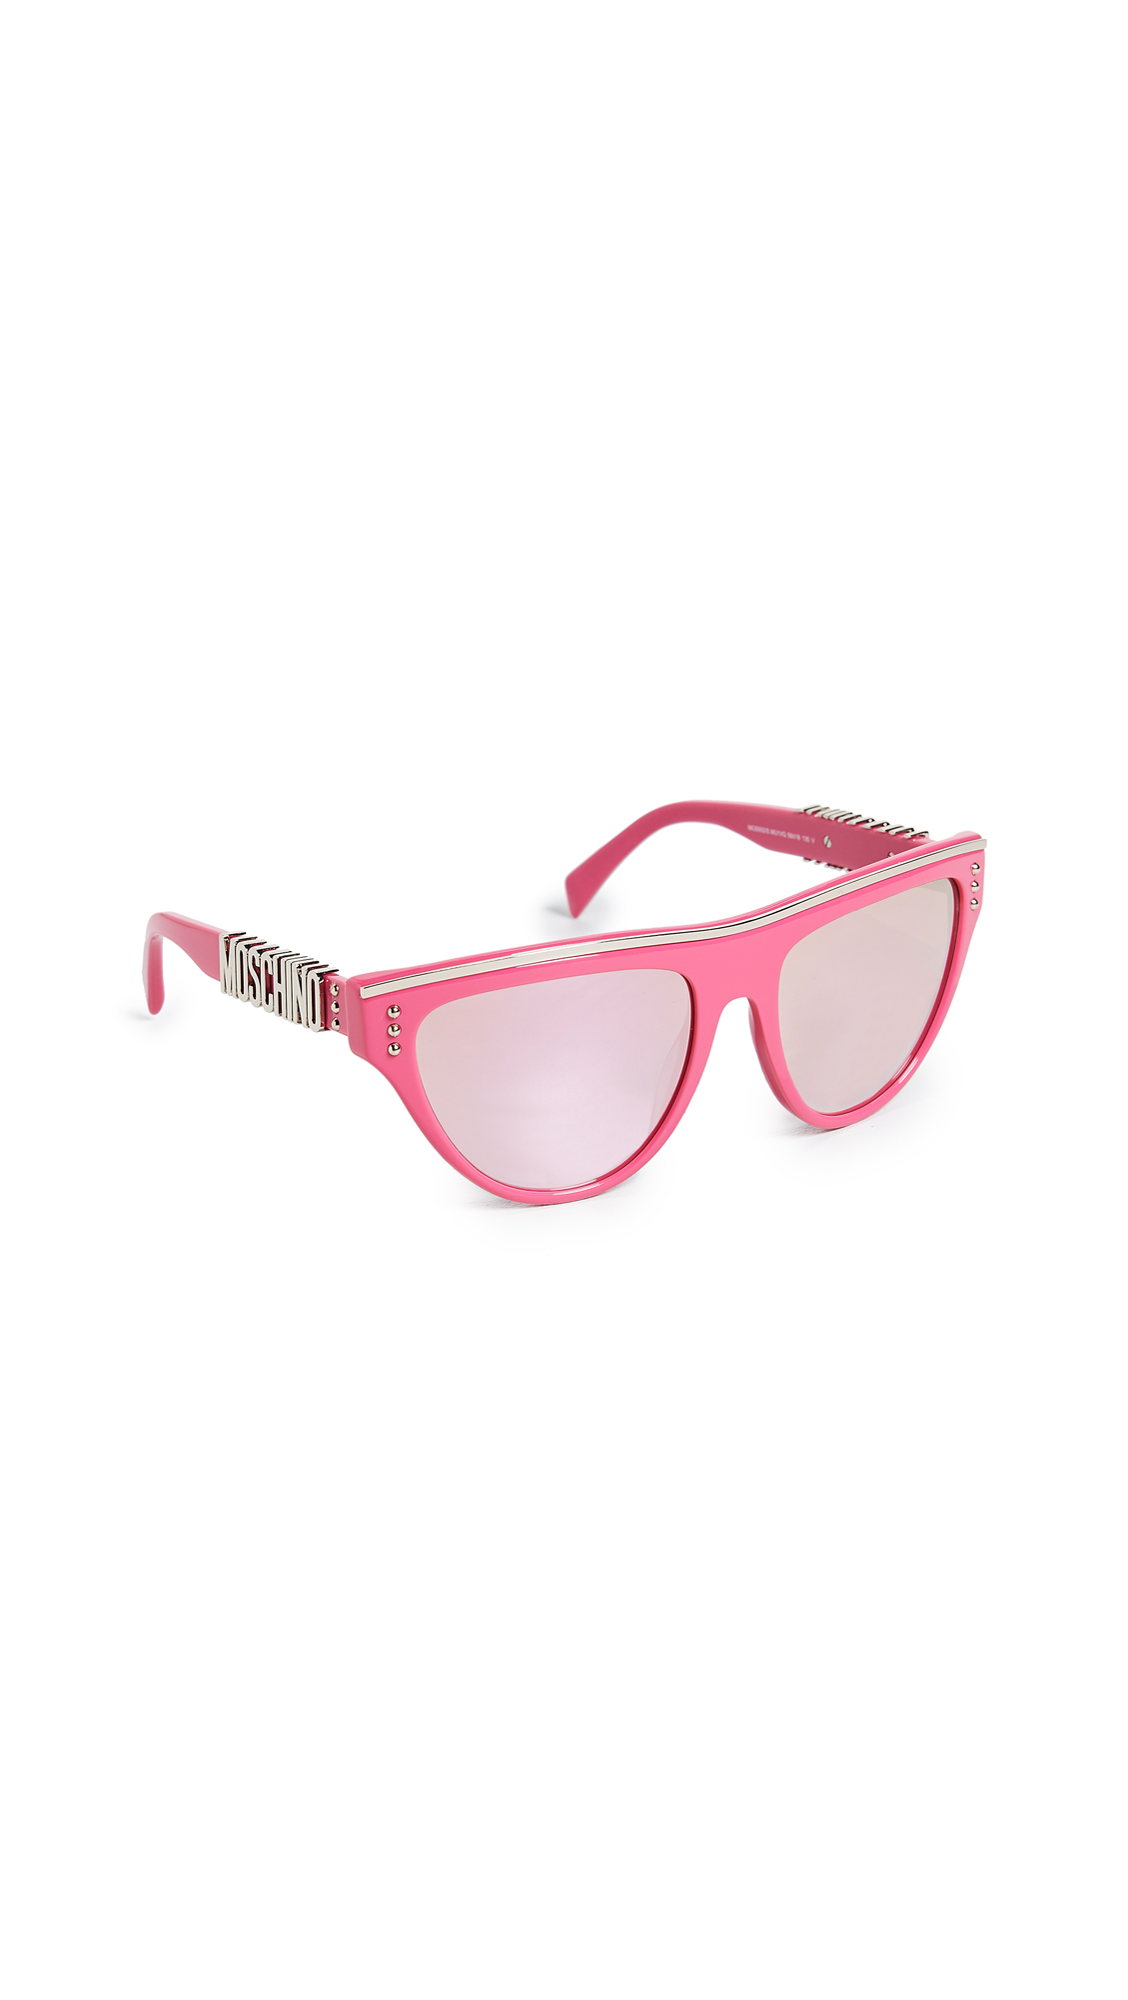 Moschino Flat Top Sunglasses - Fuchsia/Multi Pink